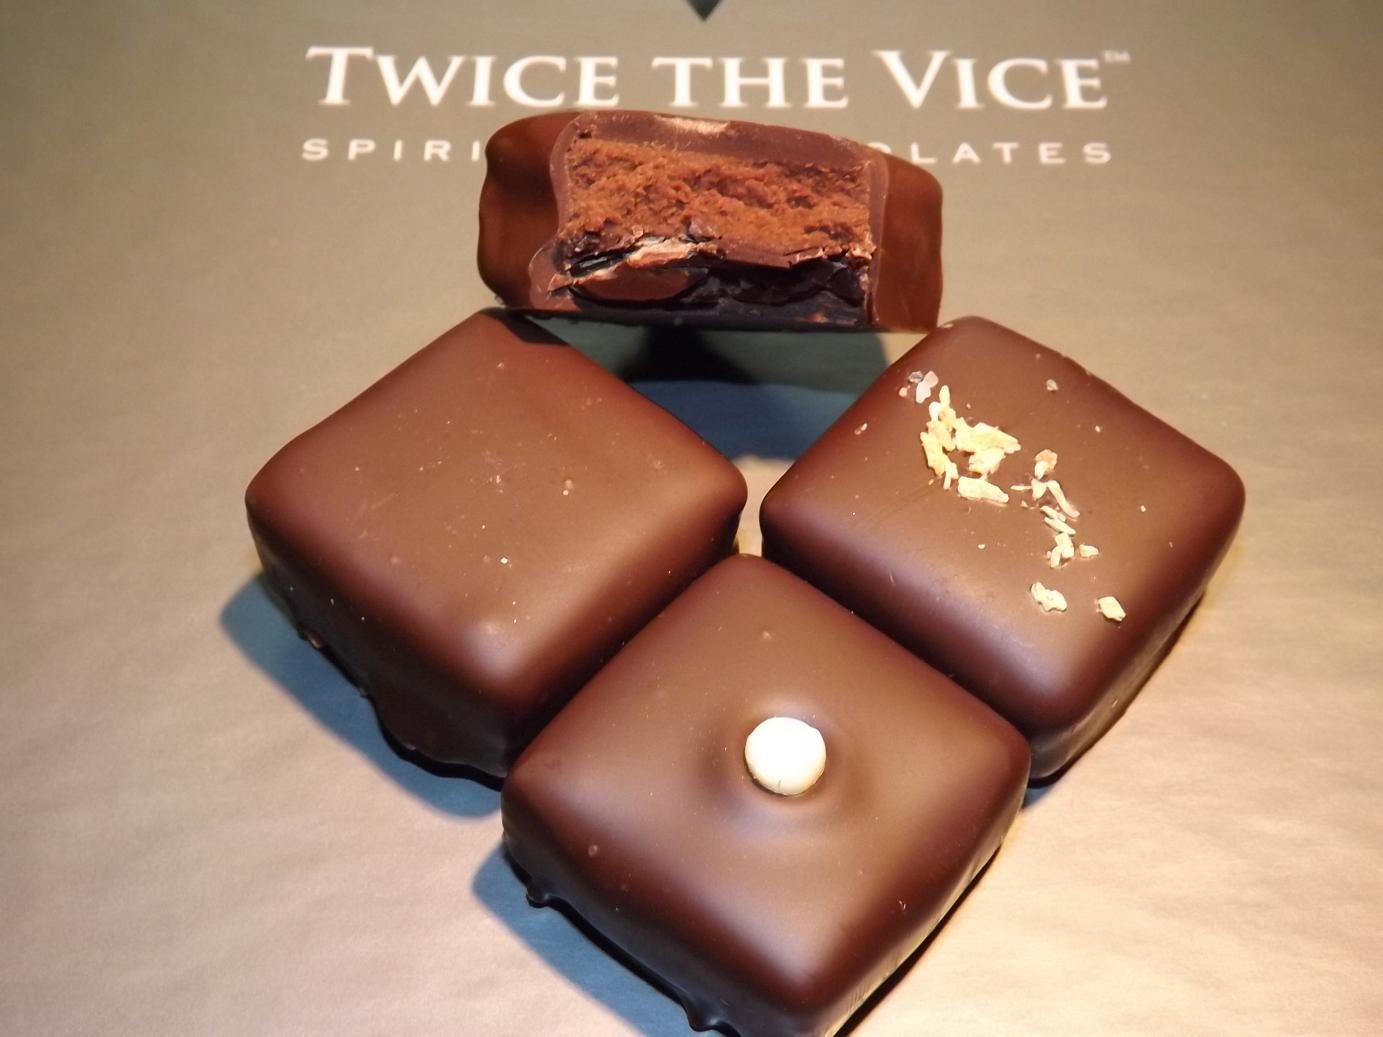 Twice The Vice sporited chocolates